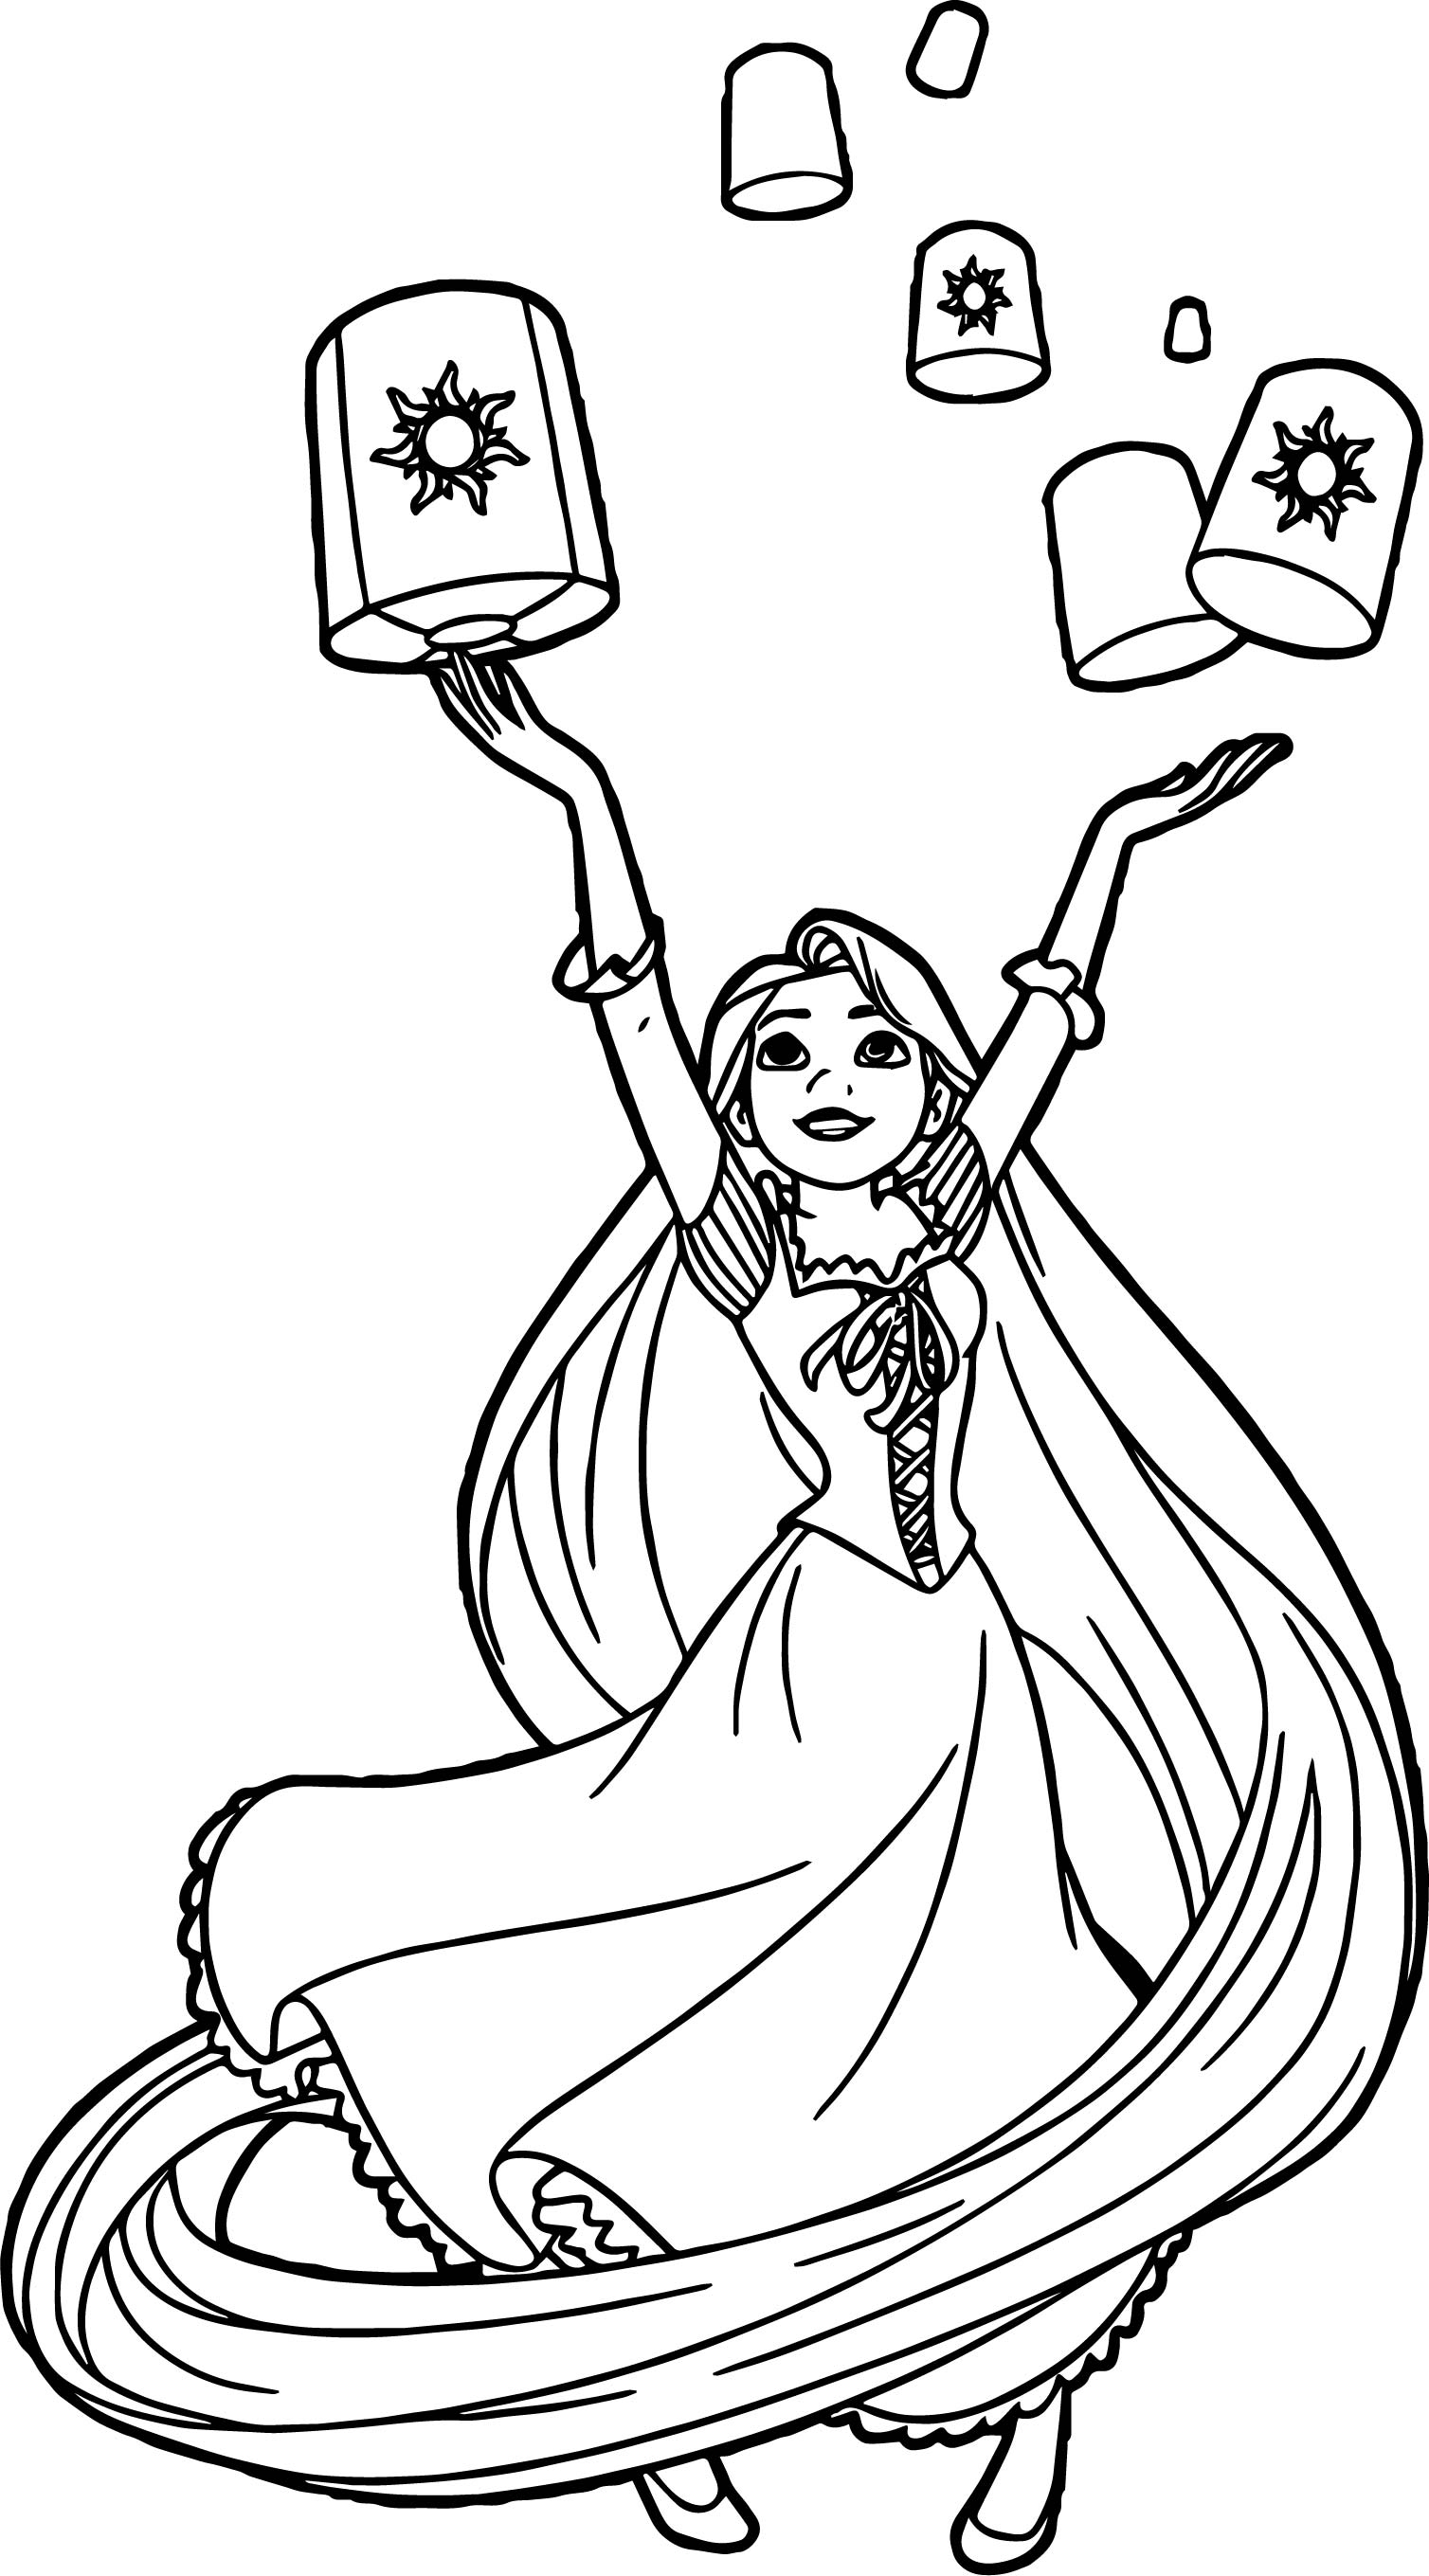 Rapunzel lanterns coloring page for Tangled coloring pages